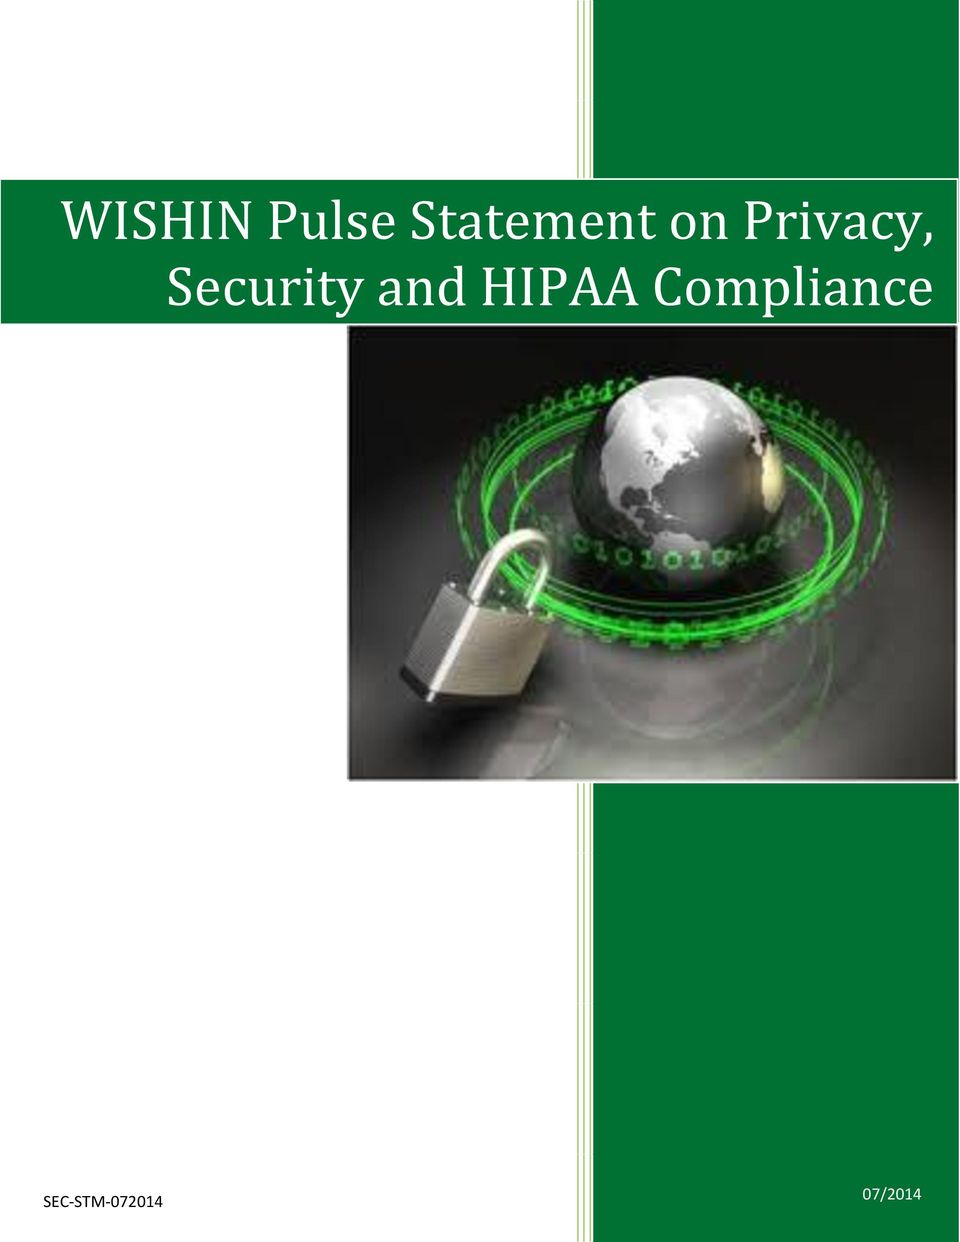 Security and HIPAA